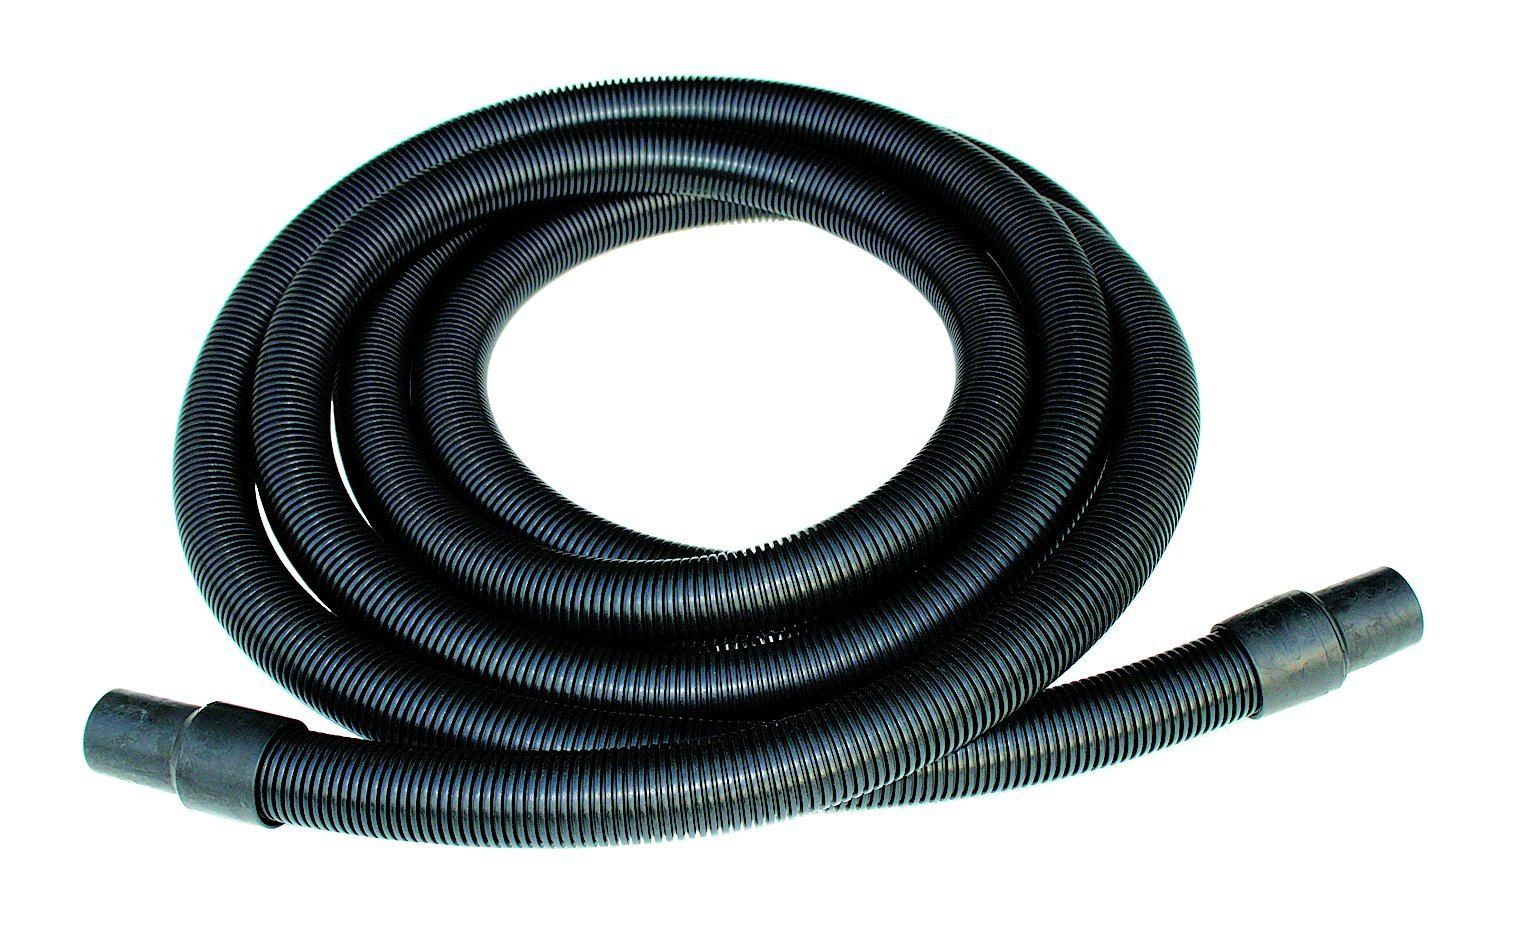 Nortech N654 Static Conductive, Standard-Duty PVC Vacuum Hose, 2-Inch by 20-Foot